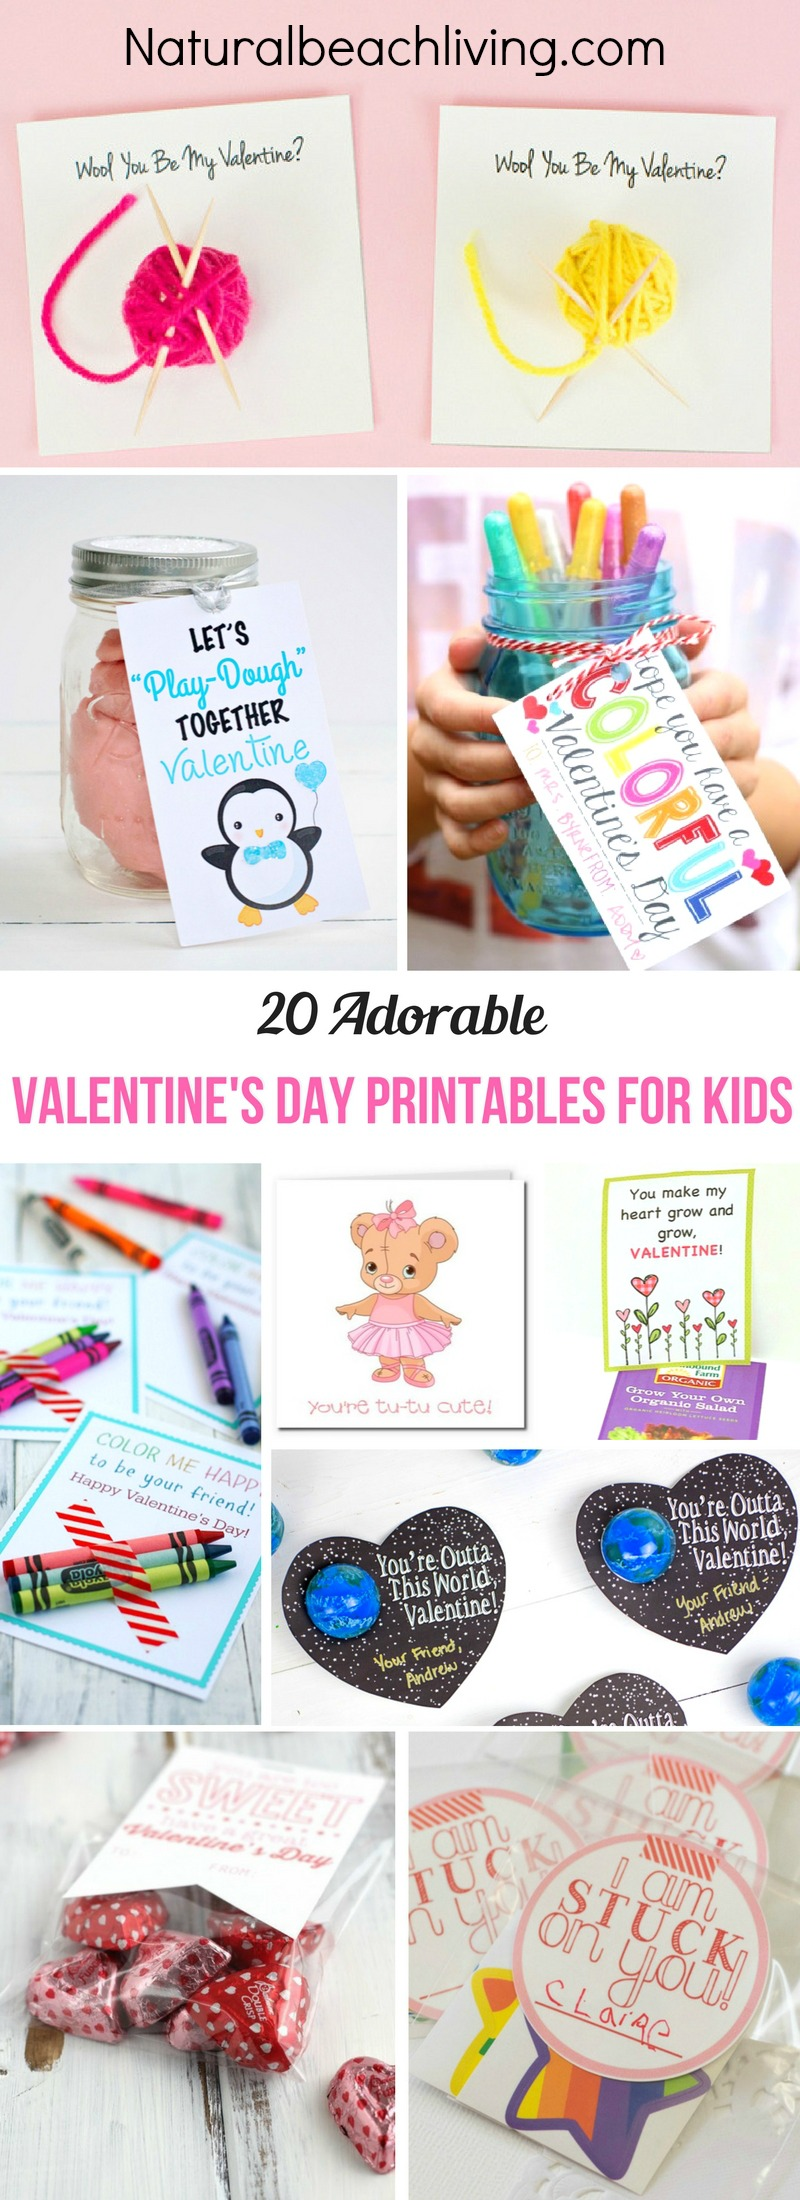 The Best Valentine Printables for Kids, Non-Candy Valentines ideas, Valentine's Day Cards, Today we are sharing over 40 Free Valentine's Day Cards for Kids, Valentines ideas and activities, Valentine's Day Party Ideas and more